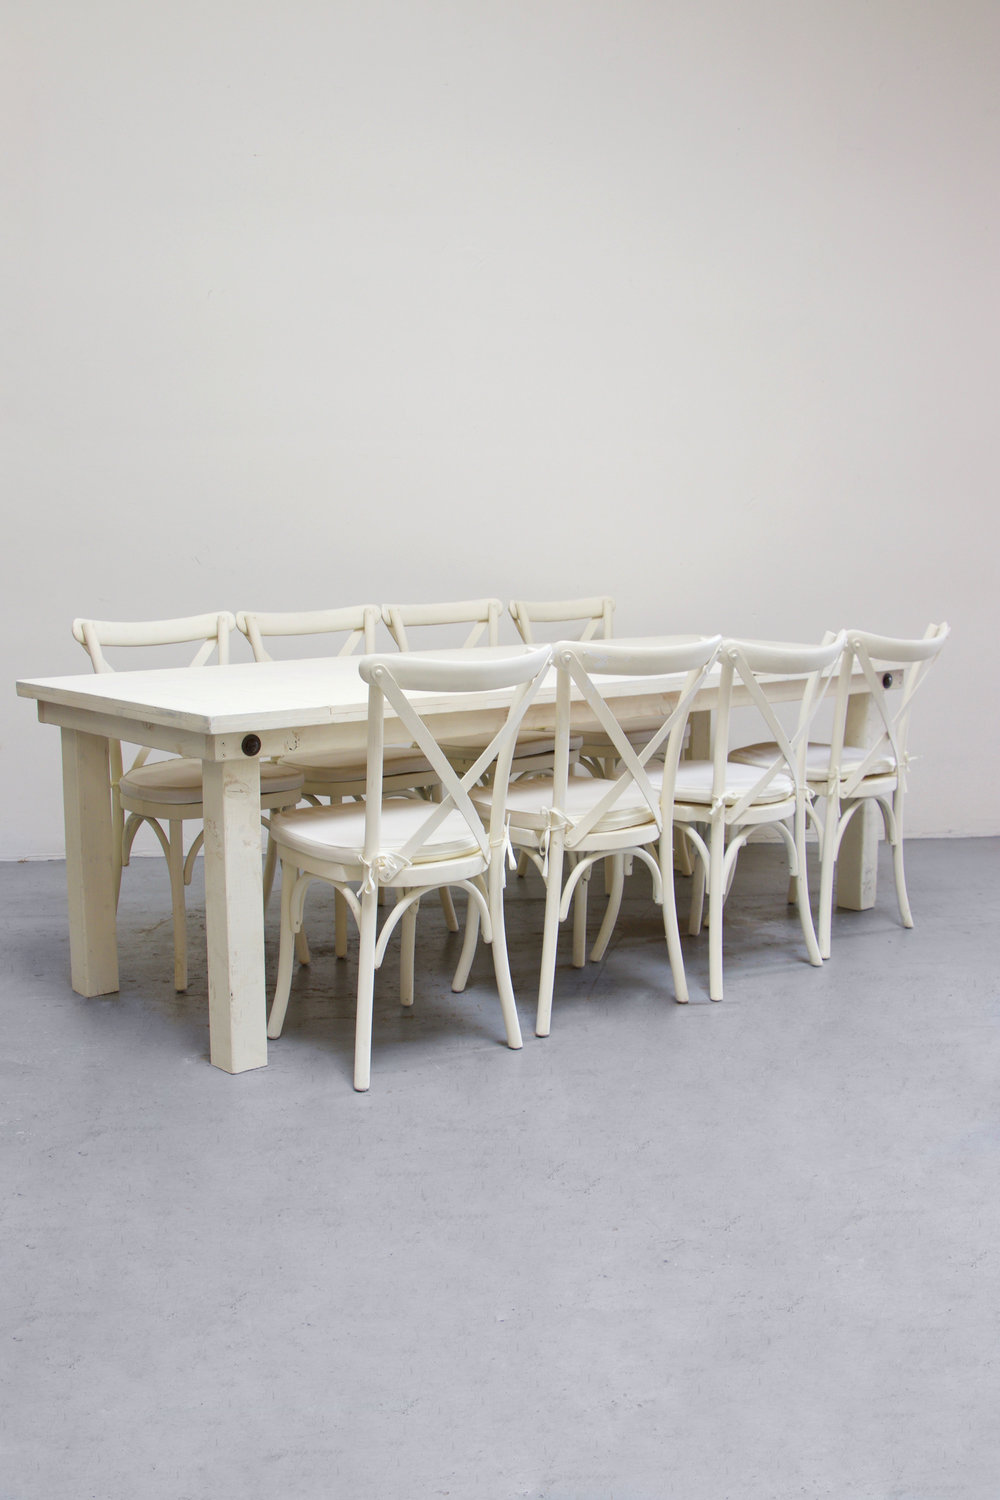 $145 1 Vintage White Farm Table w/ 8 Cross-Back Chairs